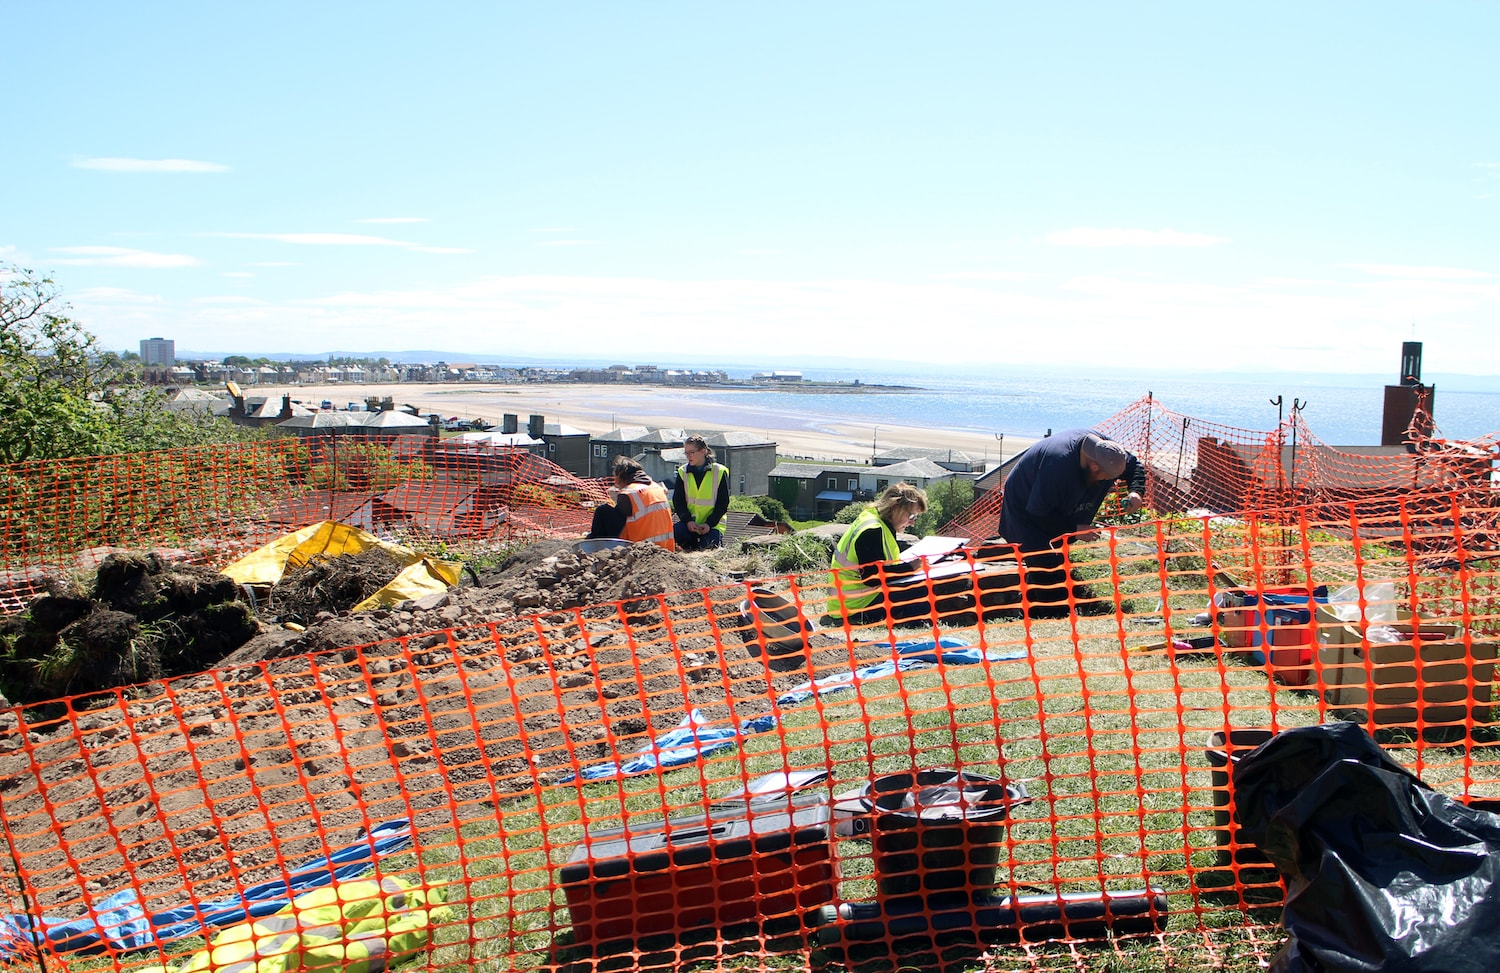 Archaeology dig work taking place in the grounds of Ardrossan Castle